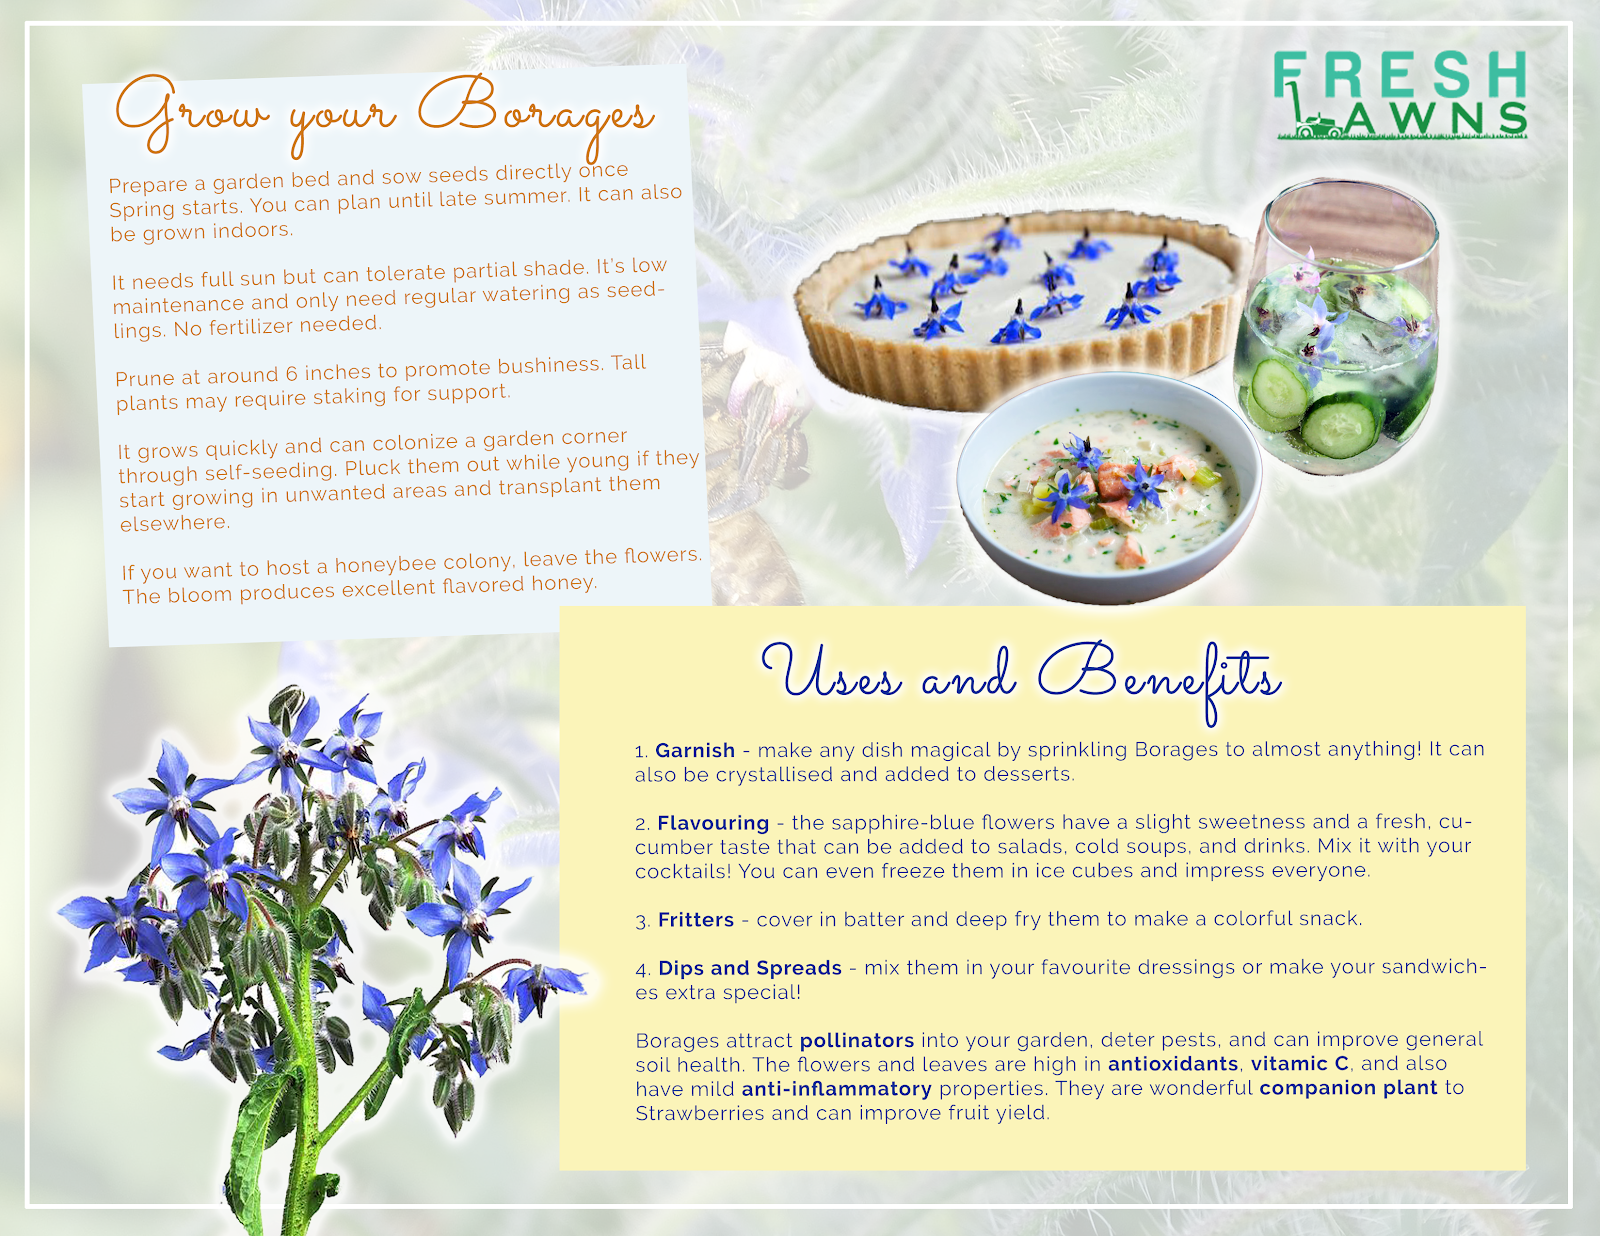 infographic for borage edible flowers